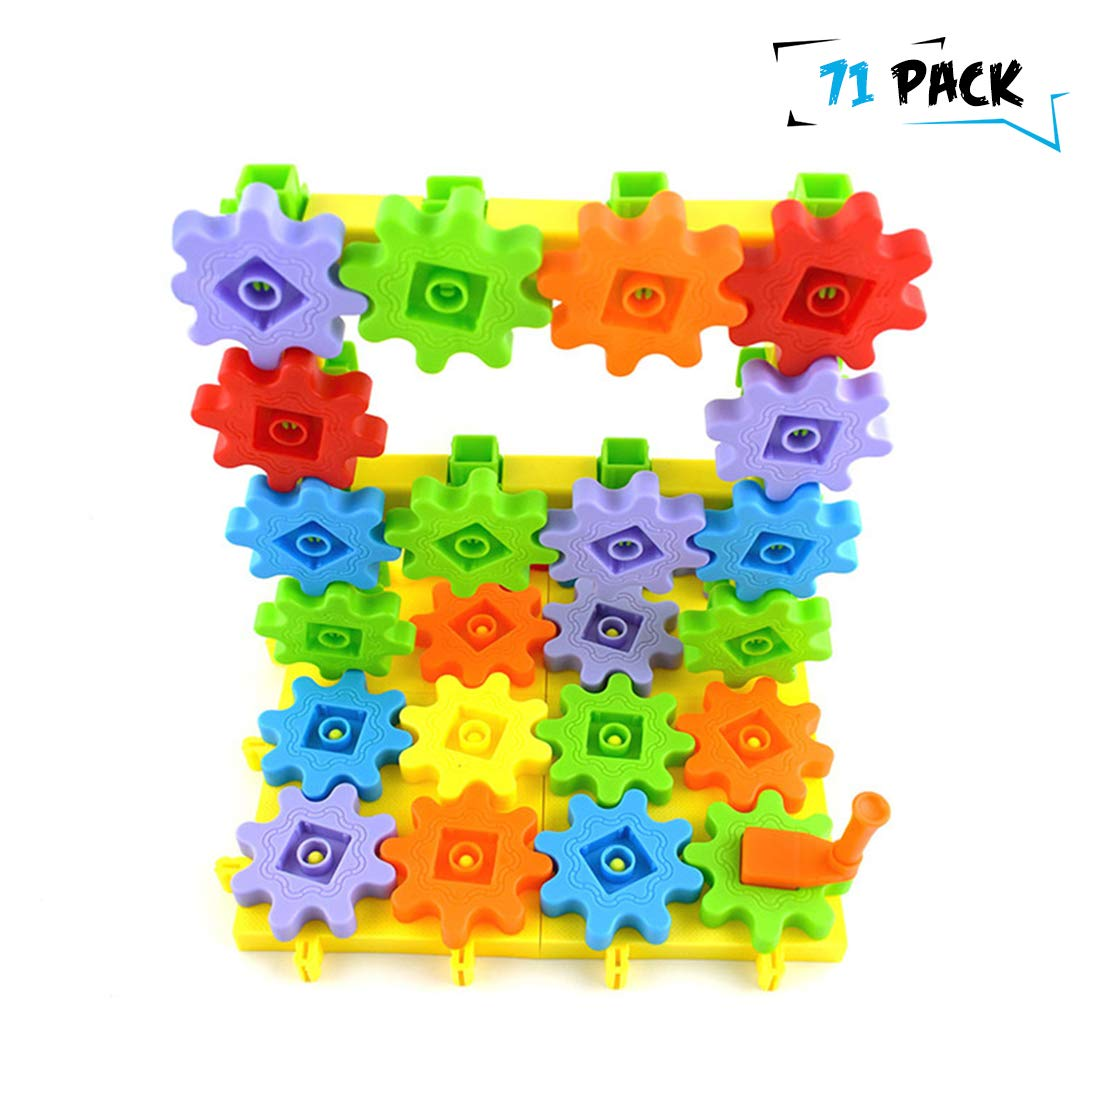 NEWBEGIN Learning Resources Gears, 71 Pieces Gear Building Blocks Set Educational Toy Interlocking Learning Blocks Colorful Spinning Gears